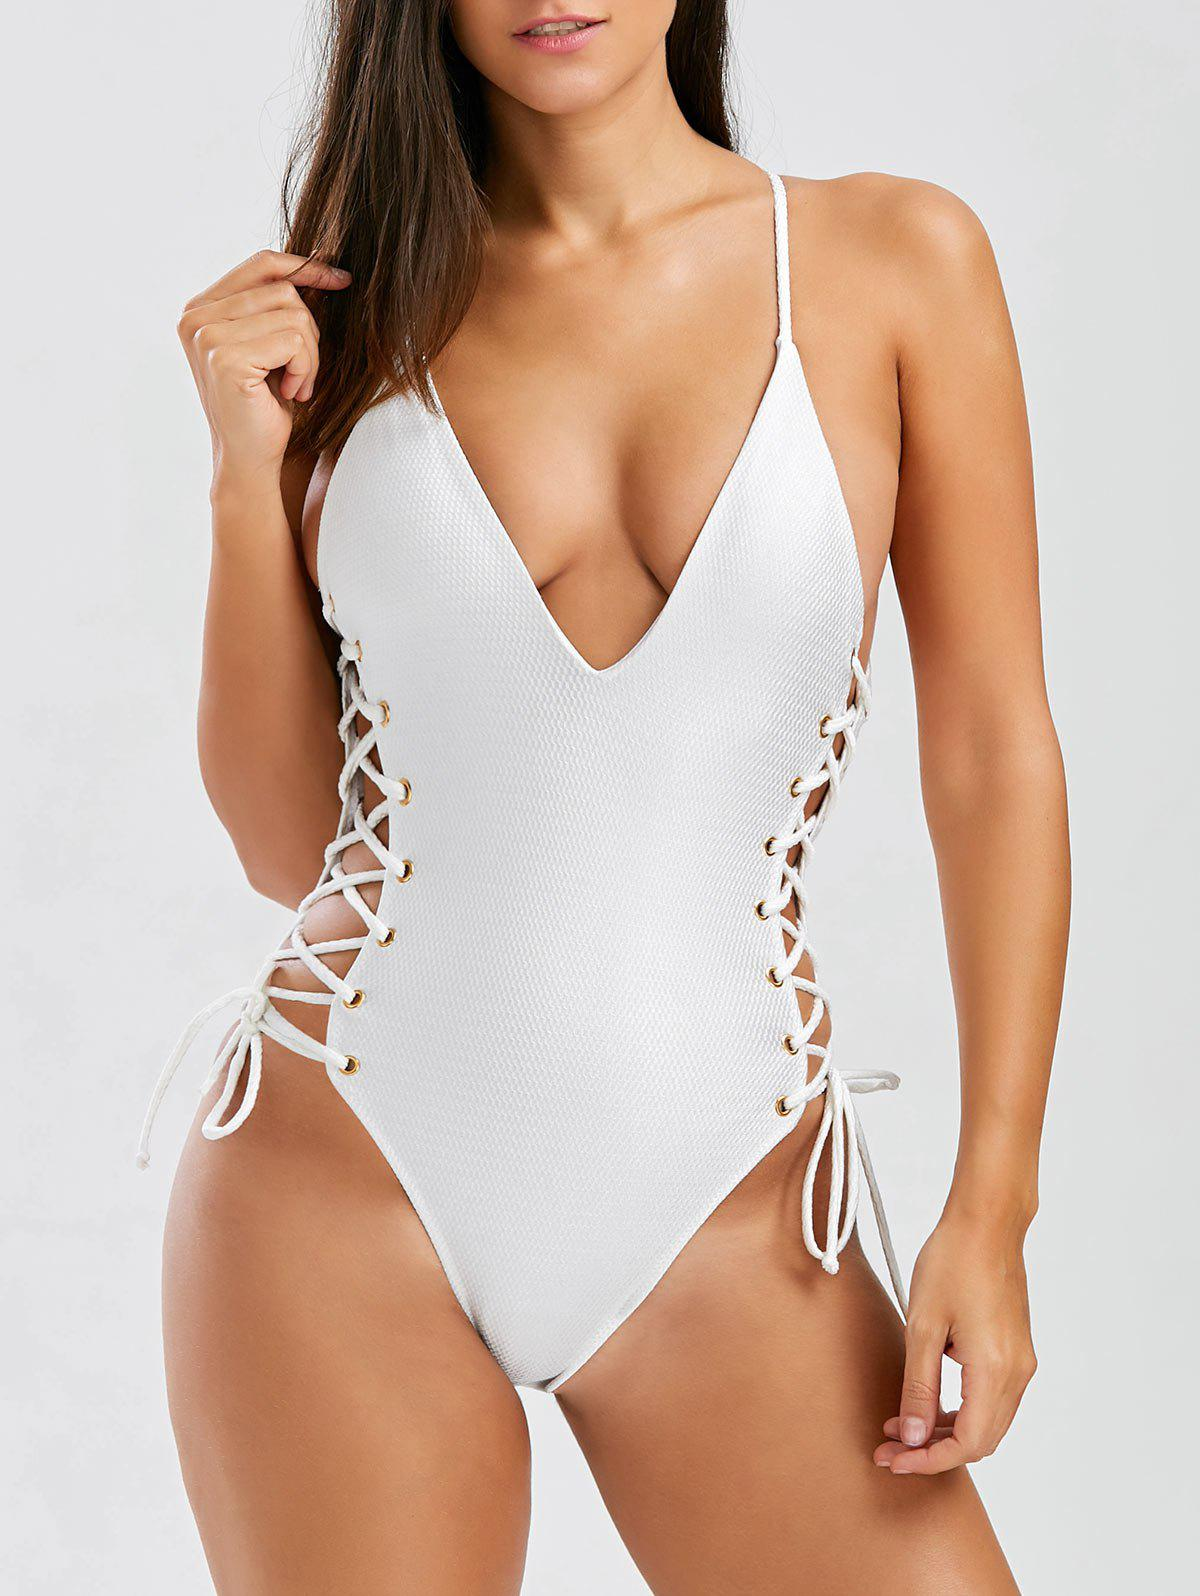 Lace Up Open Back One-Piece SwimwearWOMEN<br><br>Size: S; Color: OFF-WHITE; Swimwear Type: One Piece; Gender: For Women; Material: Polyester; Bra Style: Unlined; Support Type: Wire Free; Neckline: Spaghetti Straps; Pattern Type: Solid; Waist: High Waisted; Elasticity: Micro-elastic; Weight: 0.3600kg; Package Contents: 1 x Swimwear;